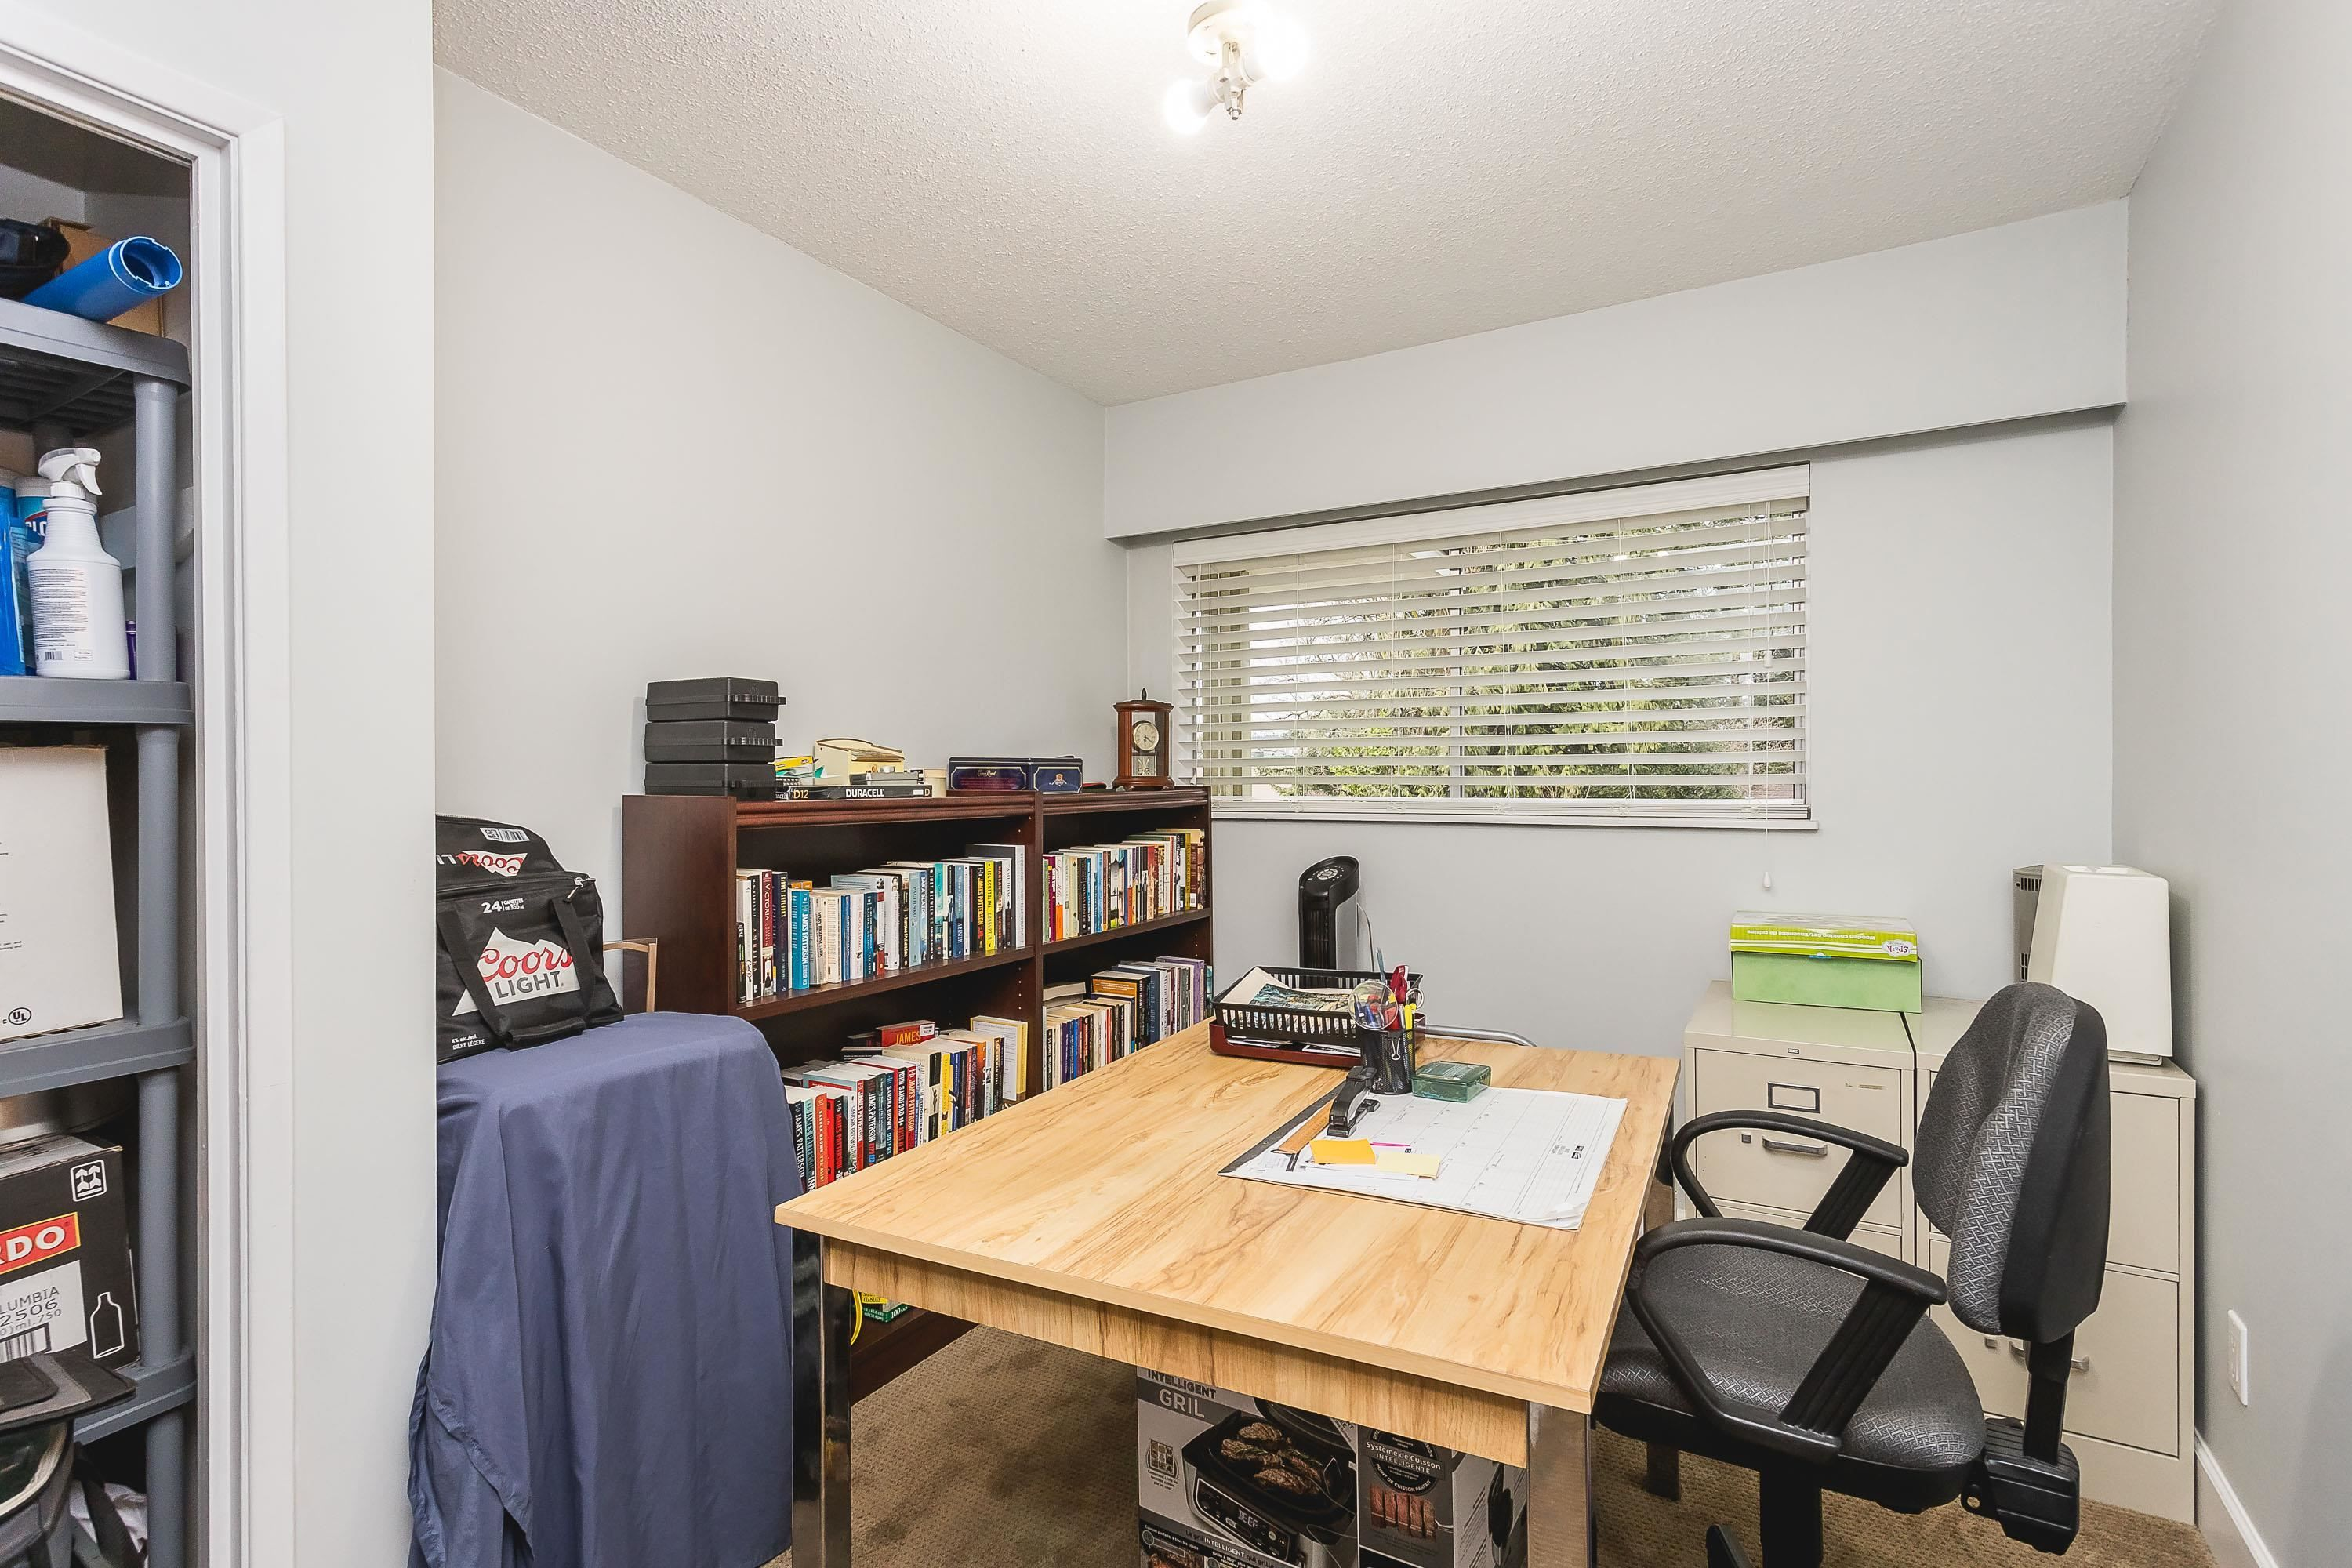 Photo 8: Photos: 3260 ULSTER Street in Port Coquitlam: Lincoln Park PQ House for sale : MLS®# R2613283